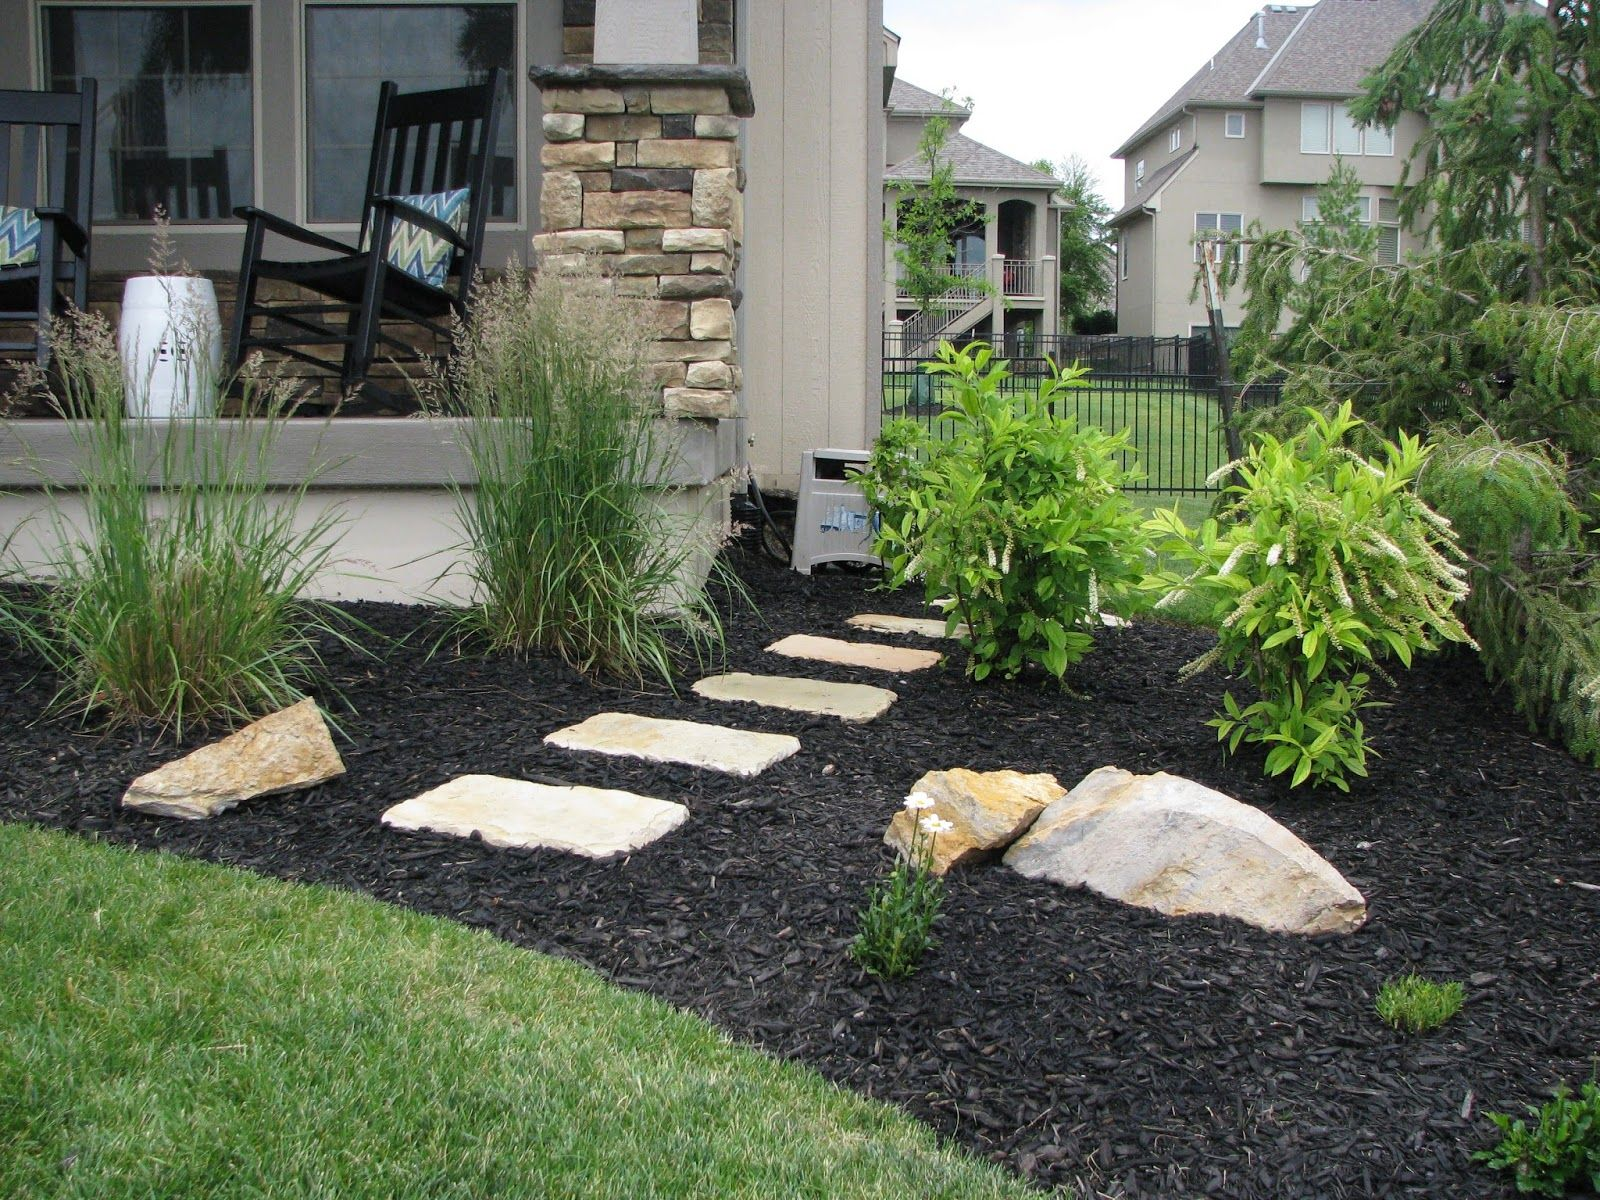 Laying stepping stones patio outdoor living pinterest for Rock stepping stones landscaping